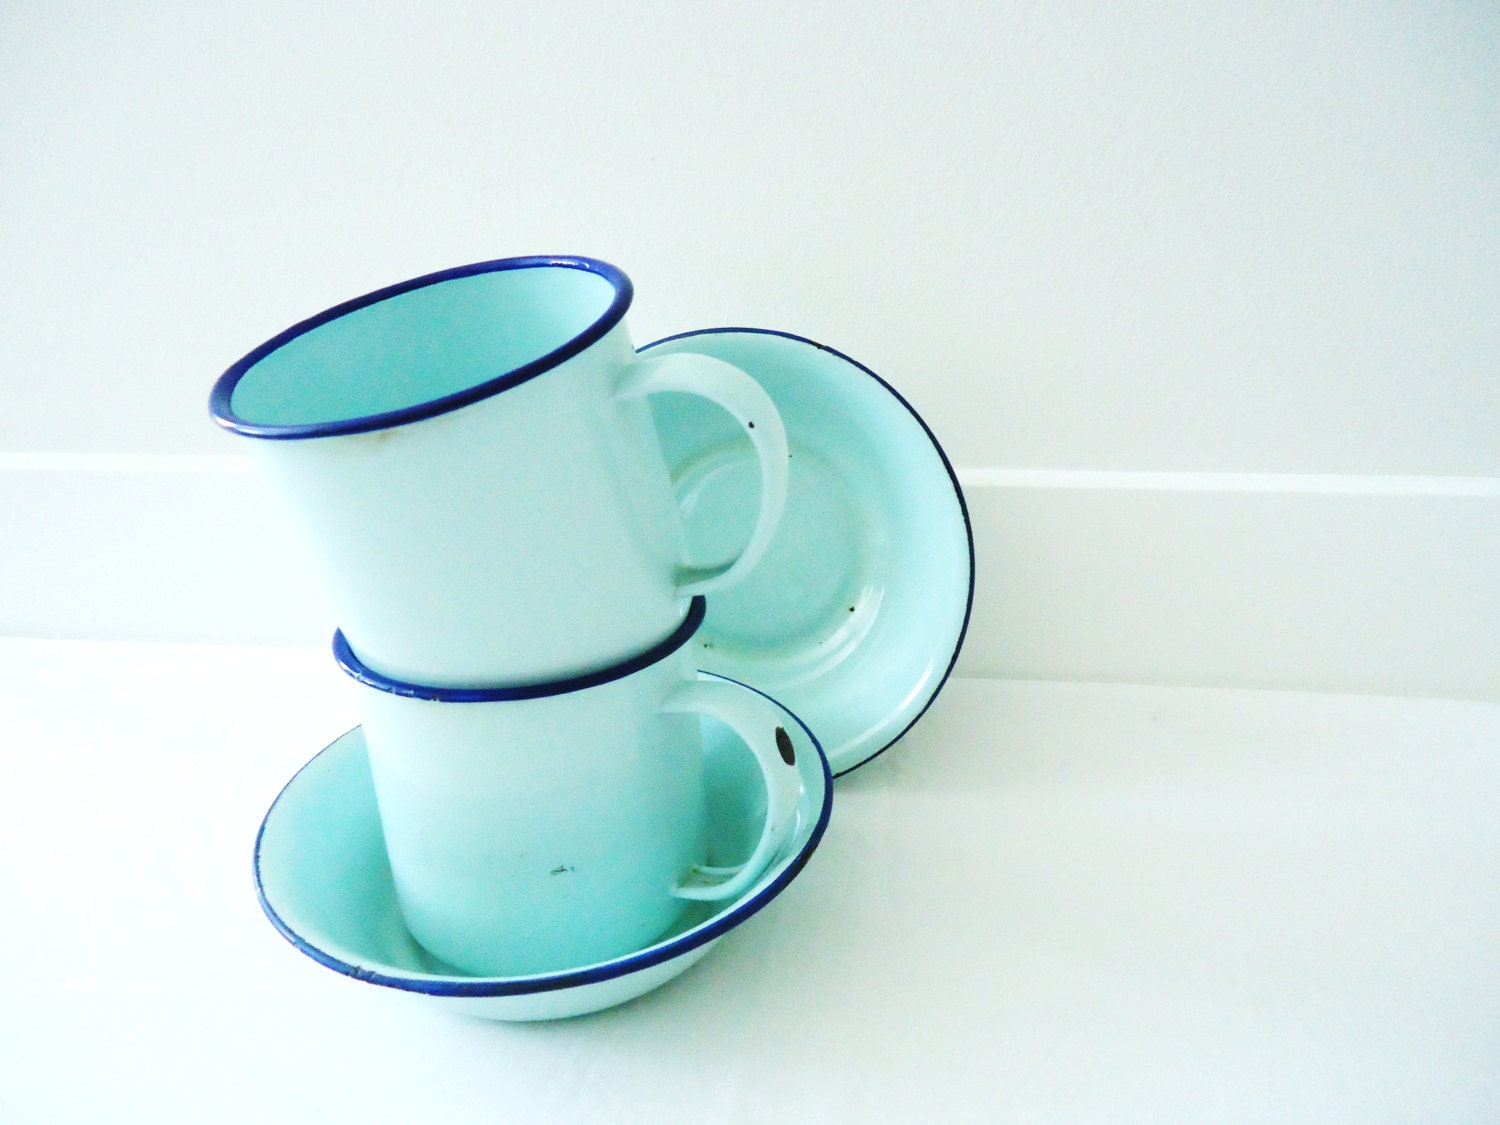 Vintage Baby Blue Enamel Cups and Bowls - hopscotchmemories